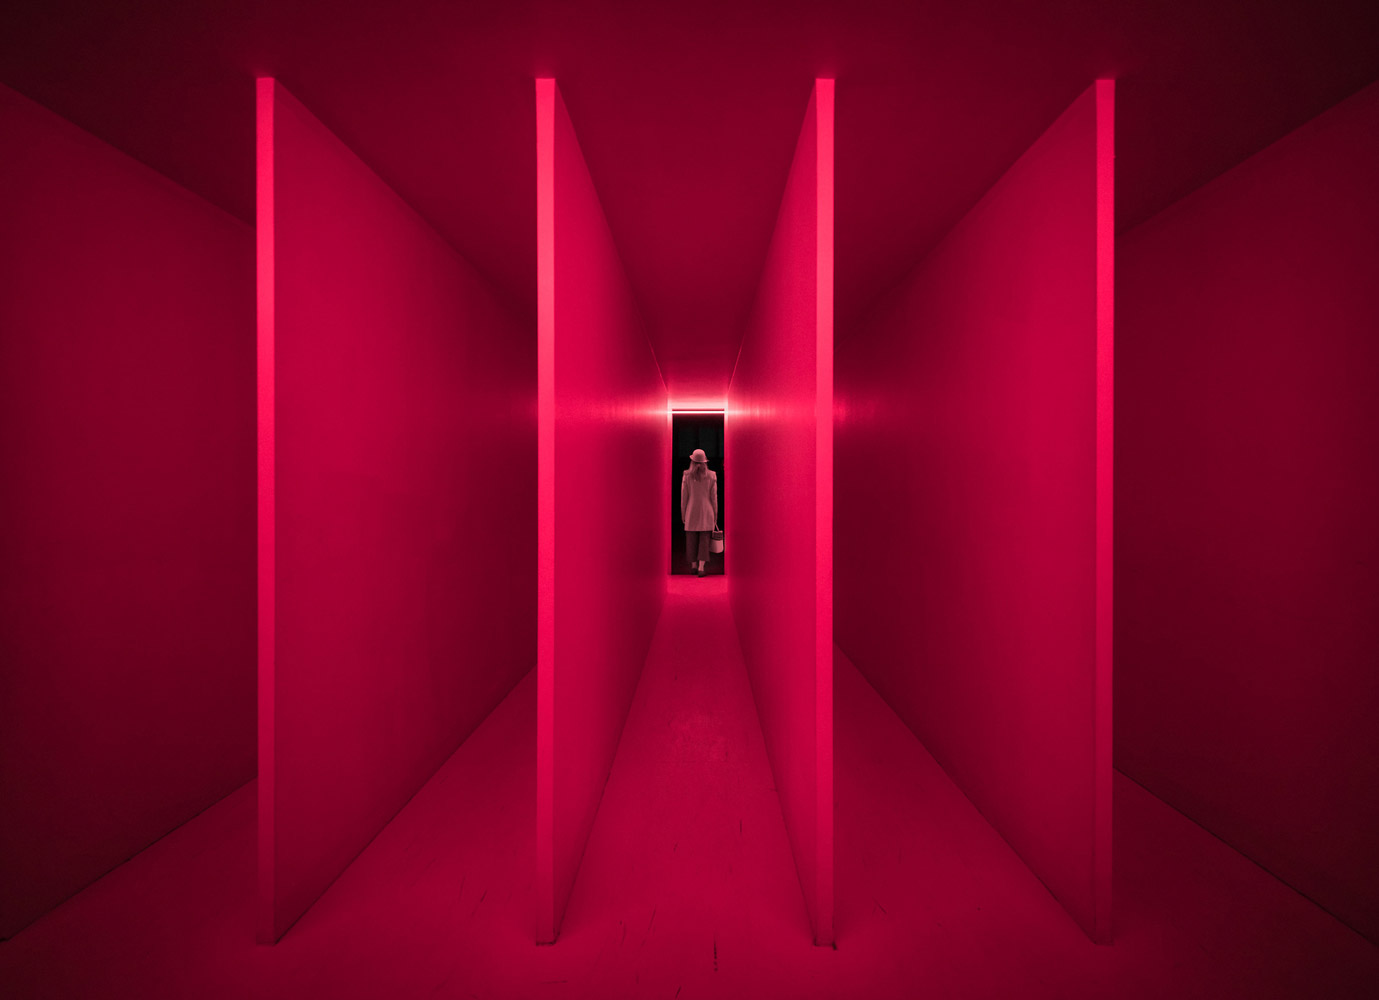 Red Dimension, © Marco Tagliarino, Concepts Category Expert Winner, CEPIC Stock Photography Awards